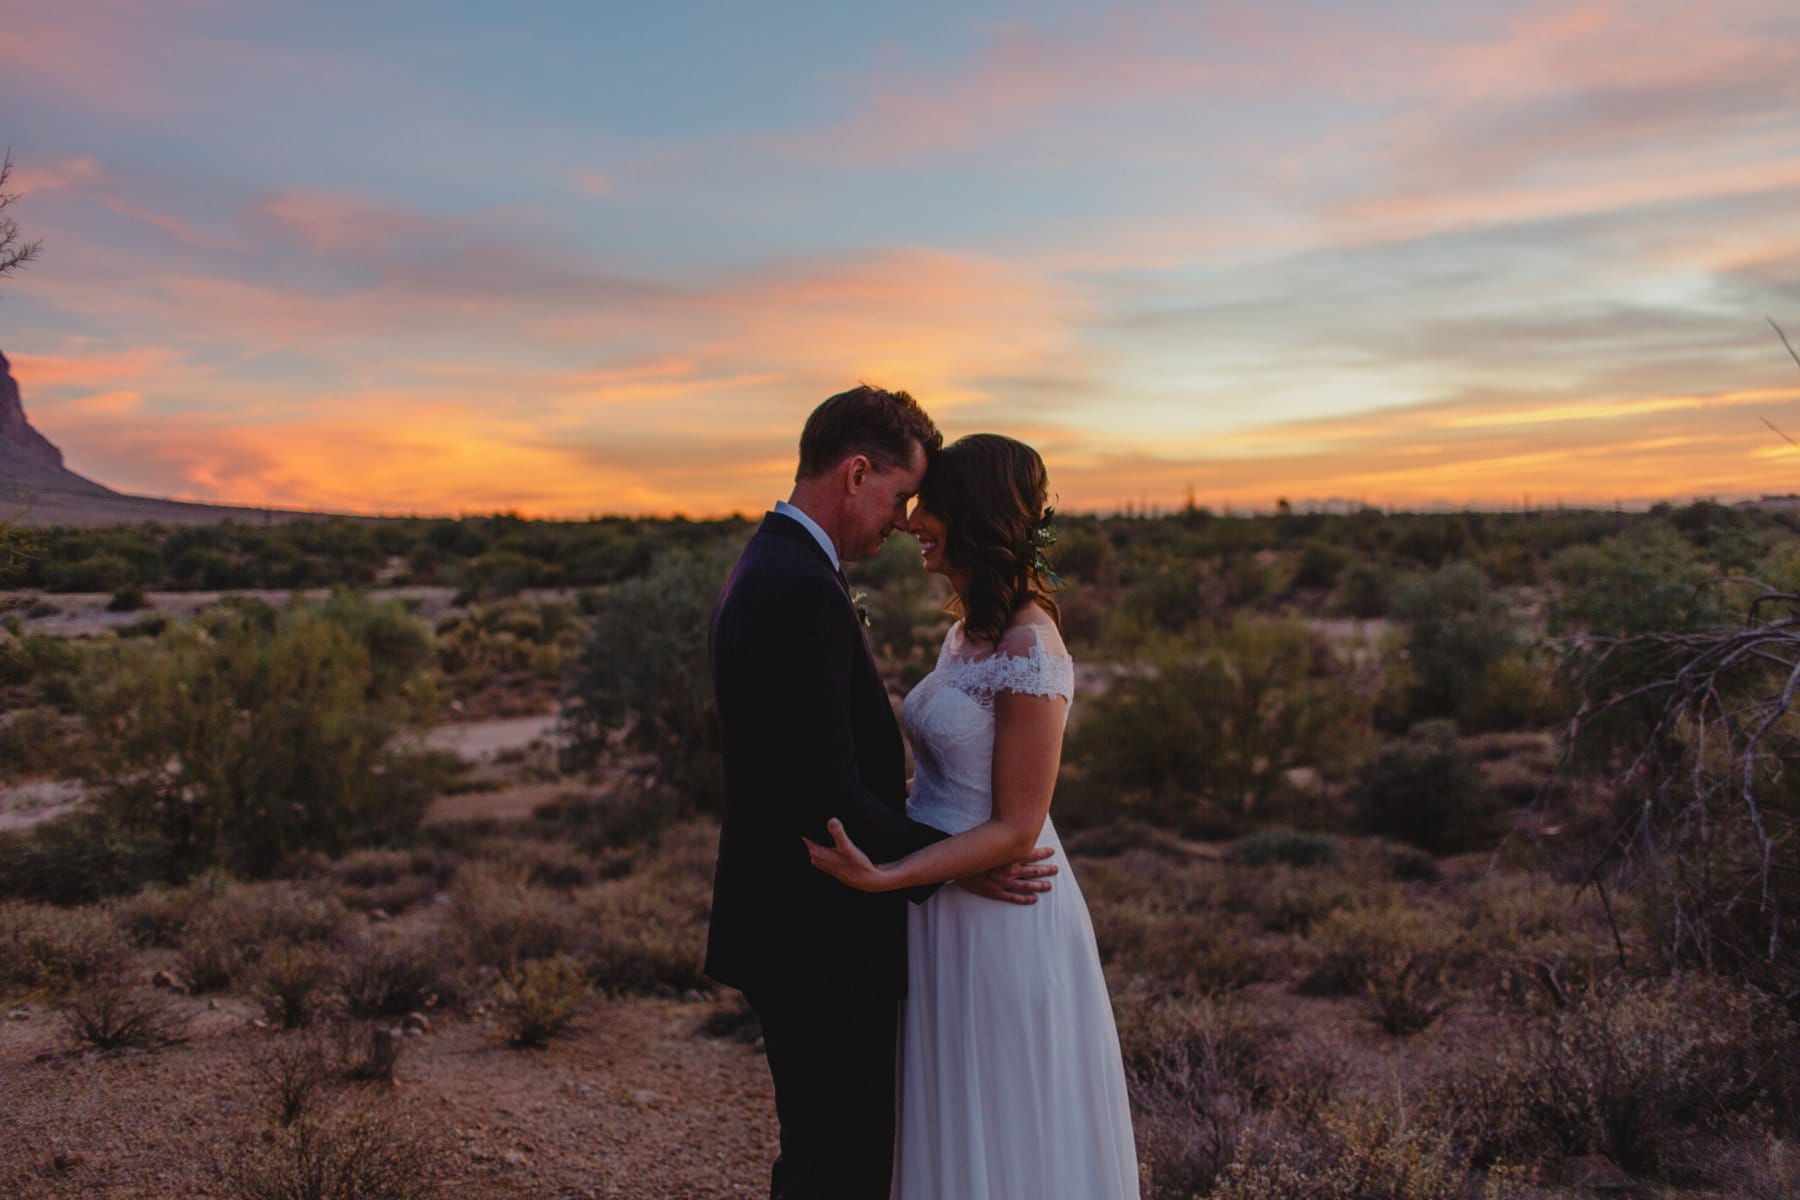 Arizona sunset elopement beautiful clouds